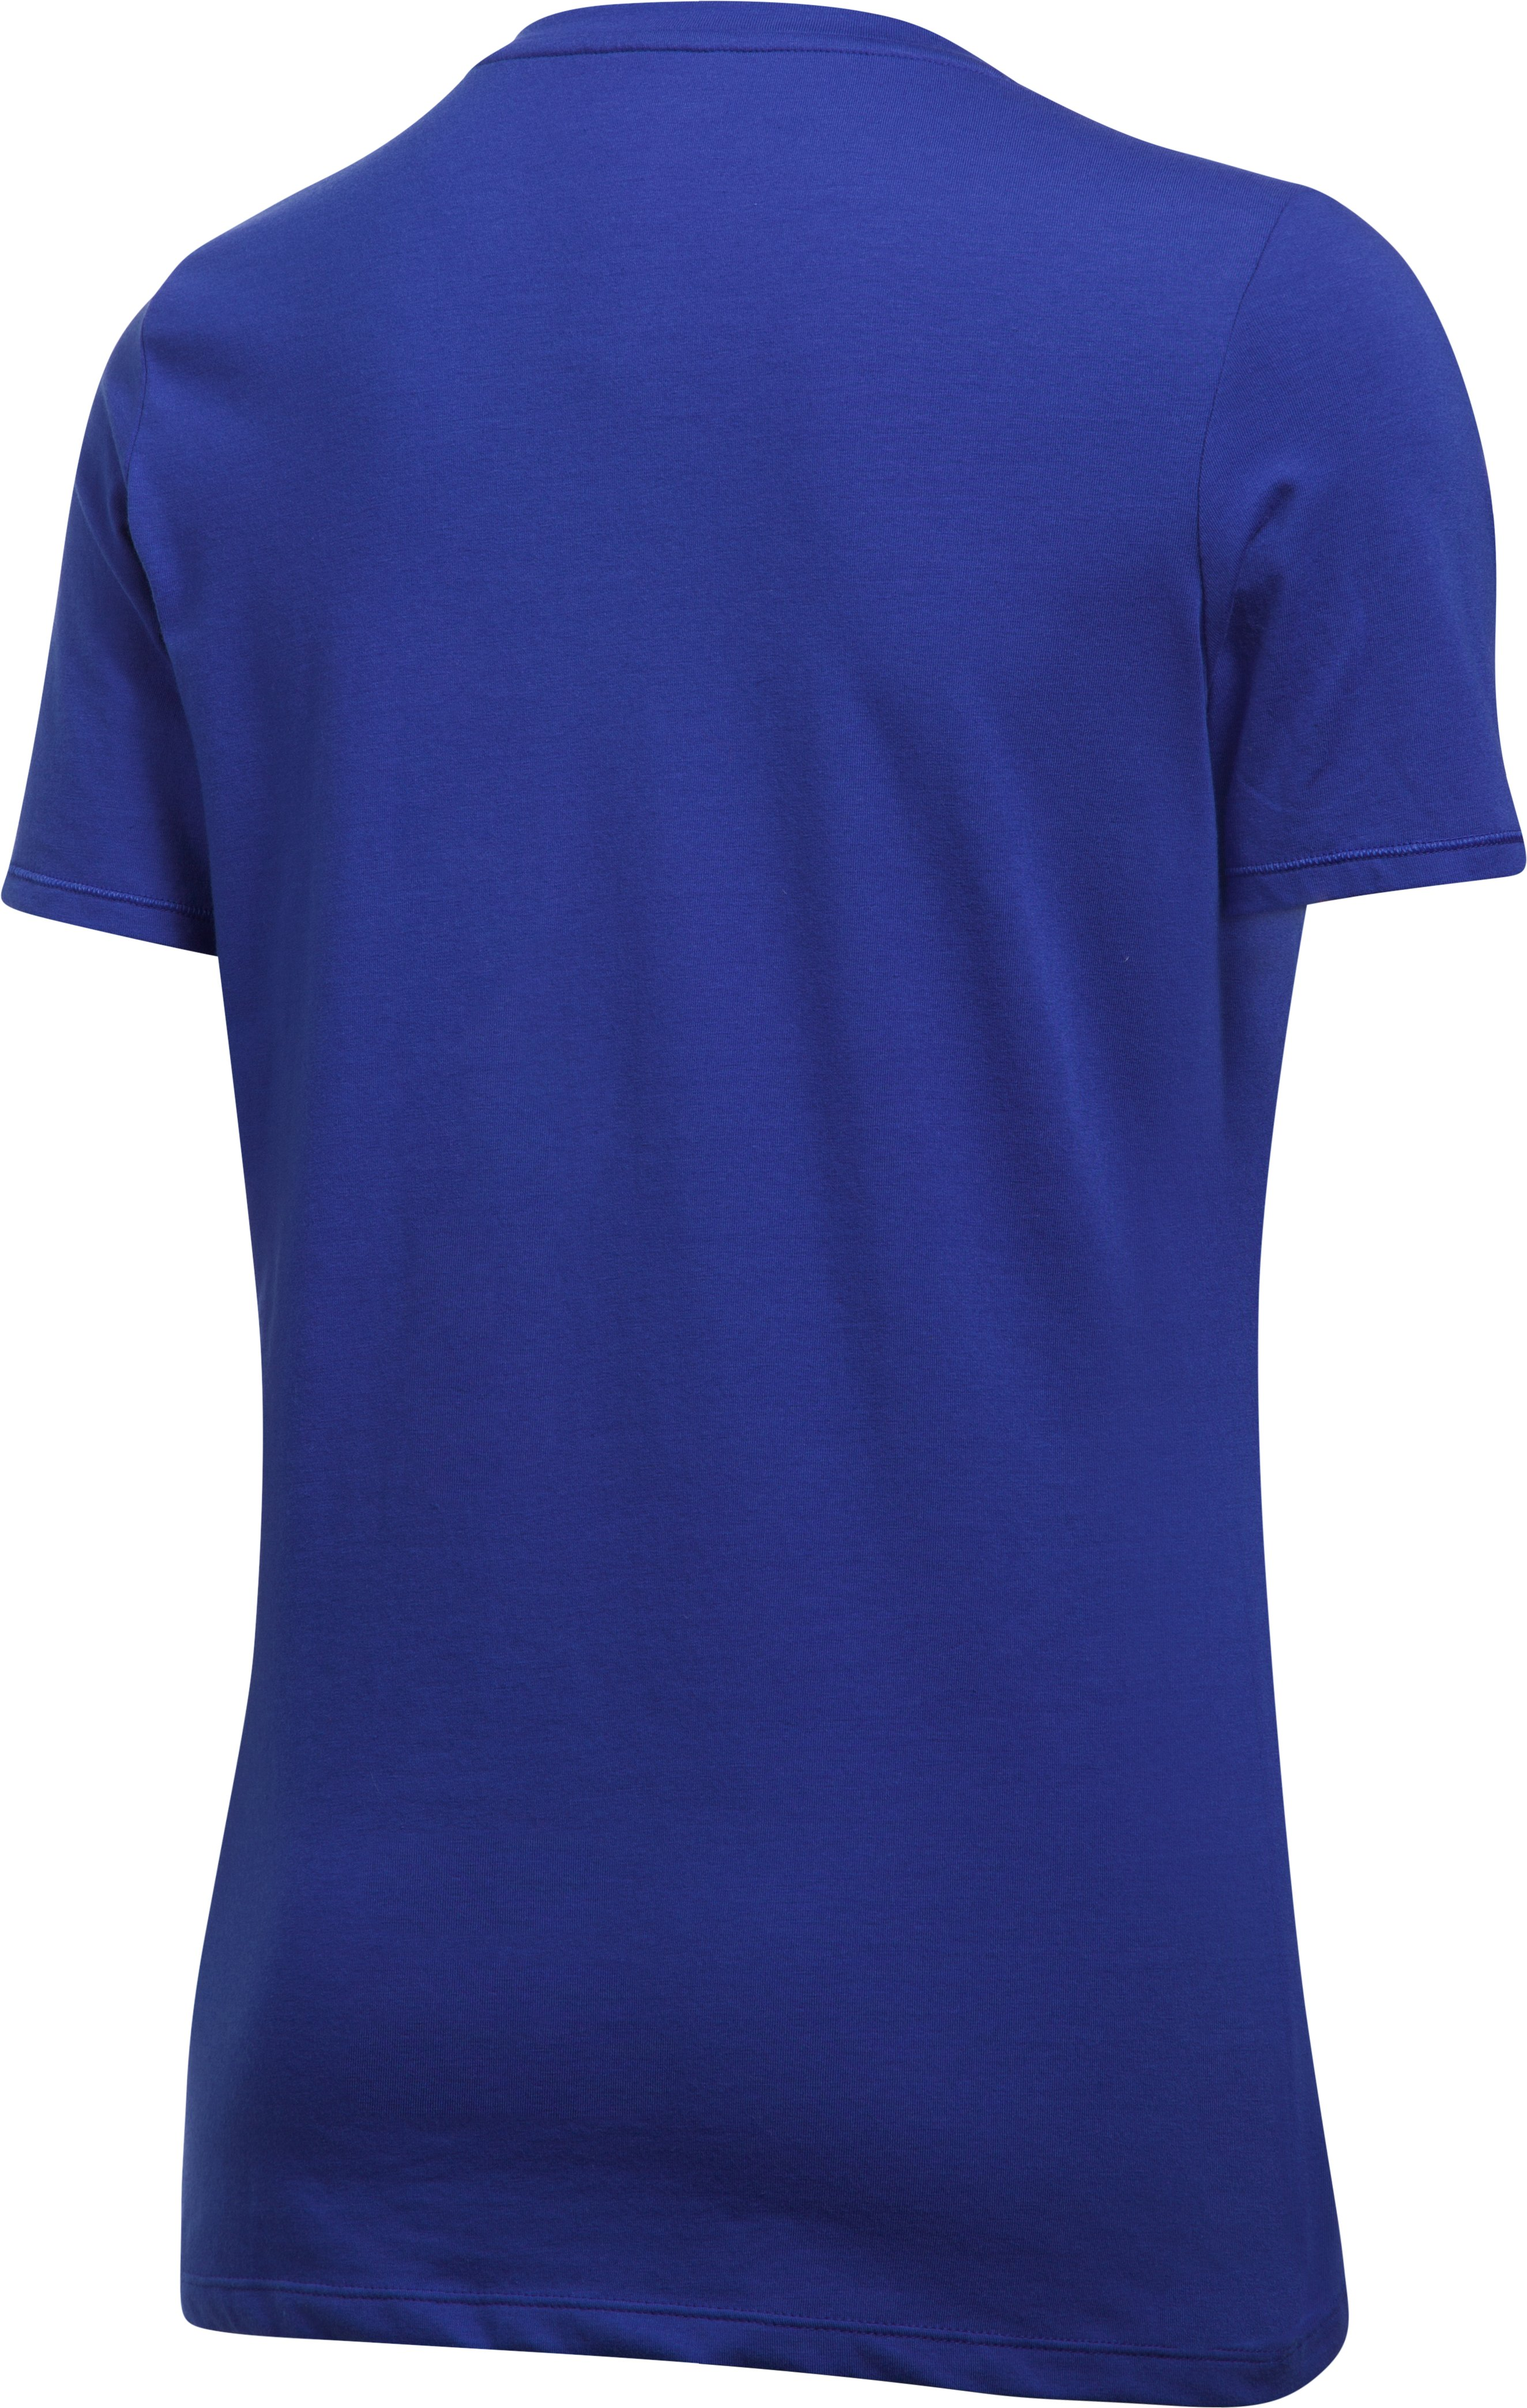 Women's Chicago Cubs Offshore V-Neck, Royal,